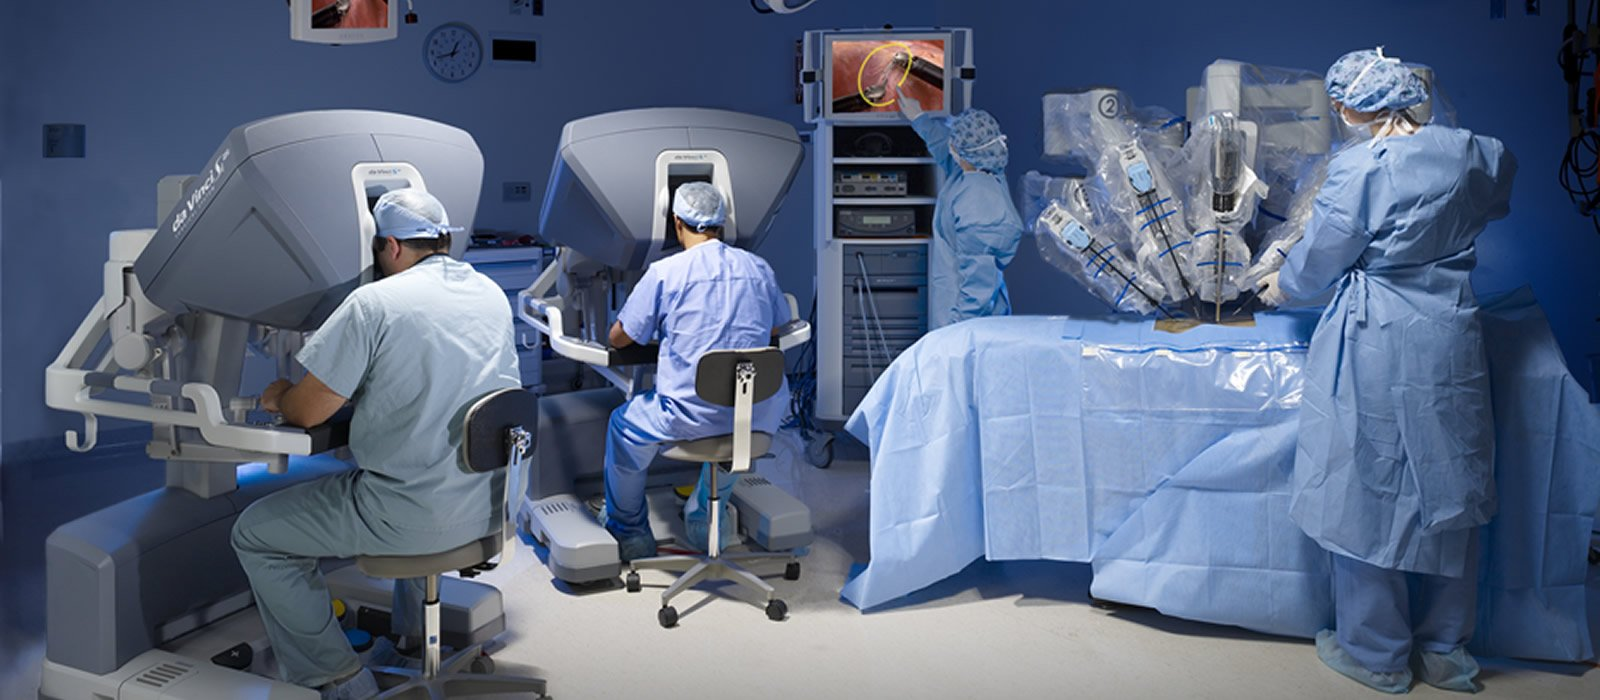 Robotic Surgery Operations